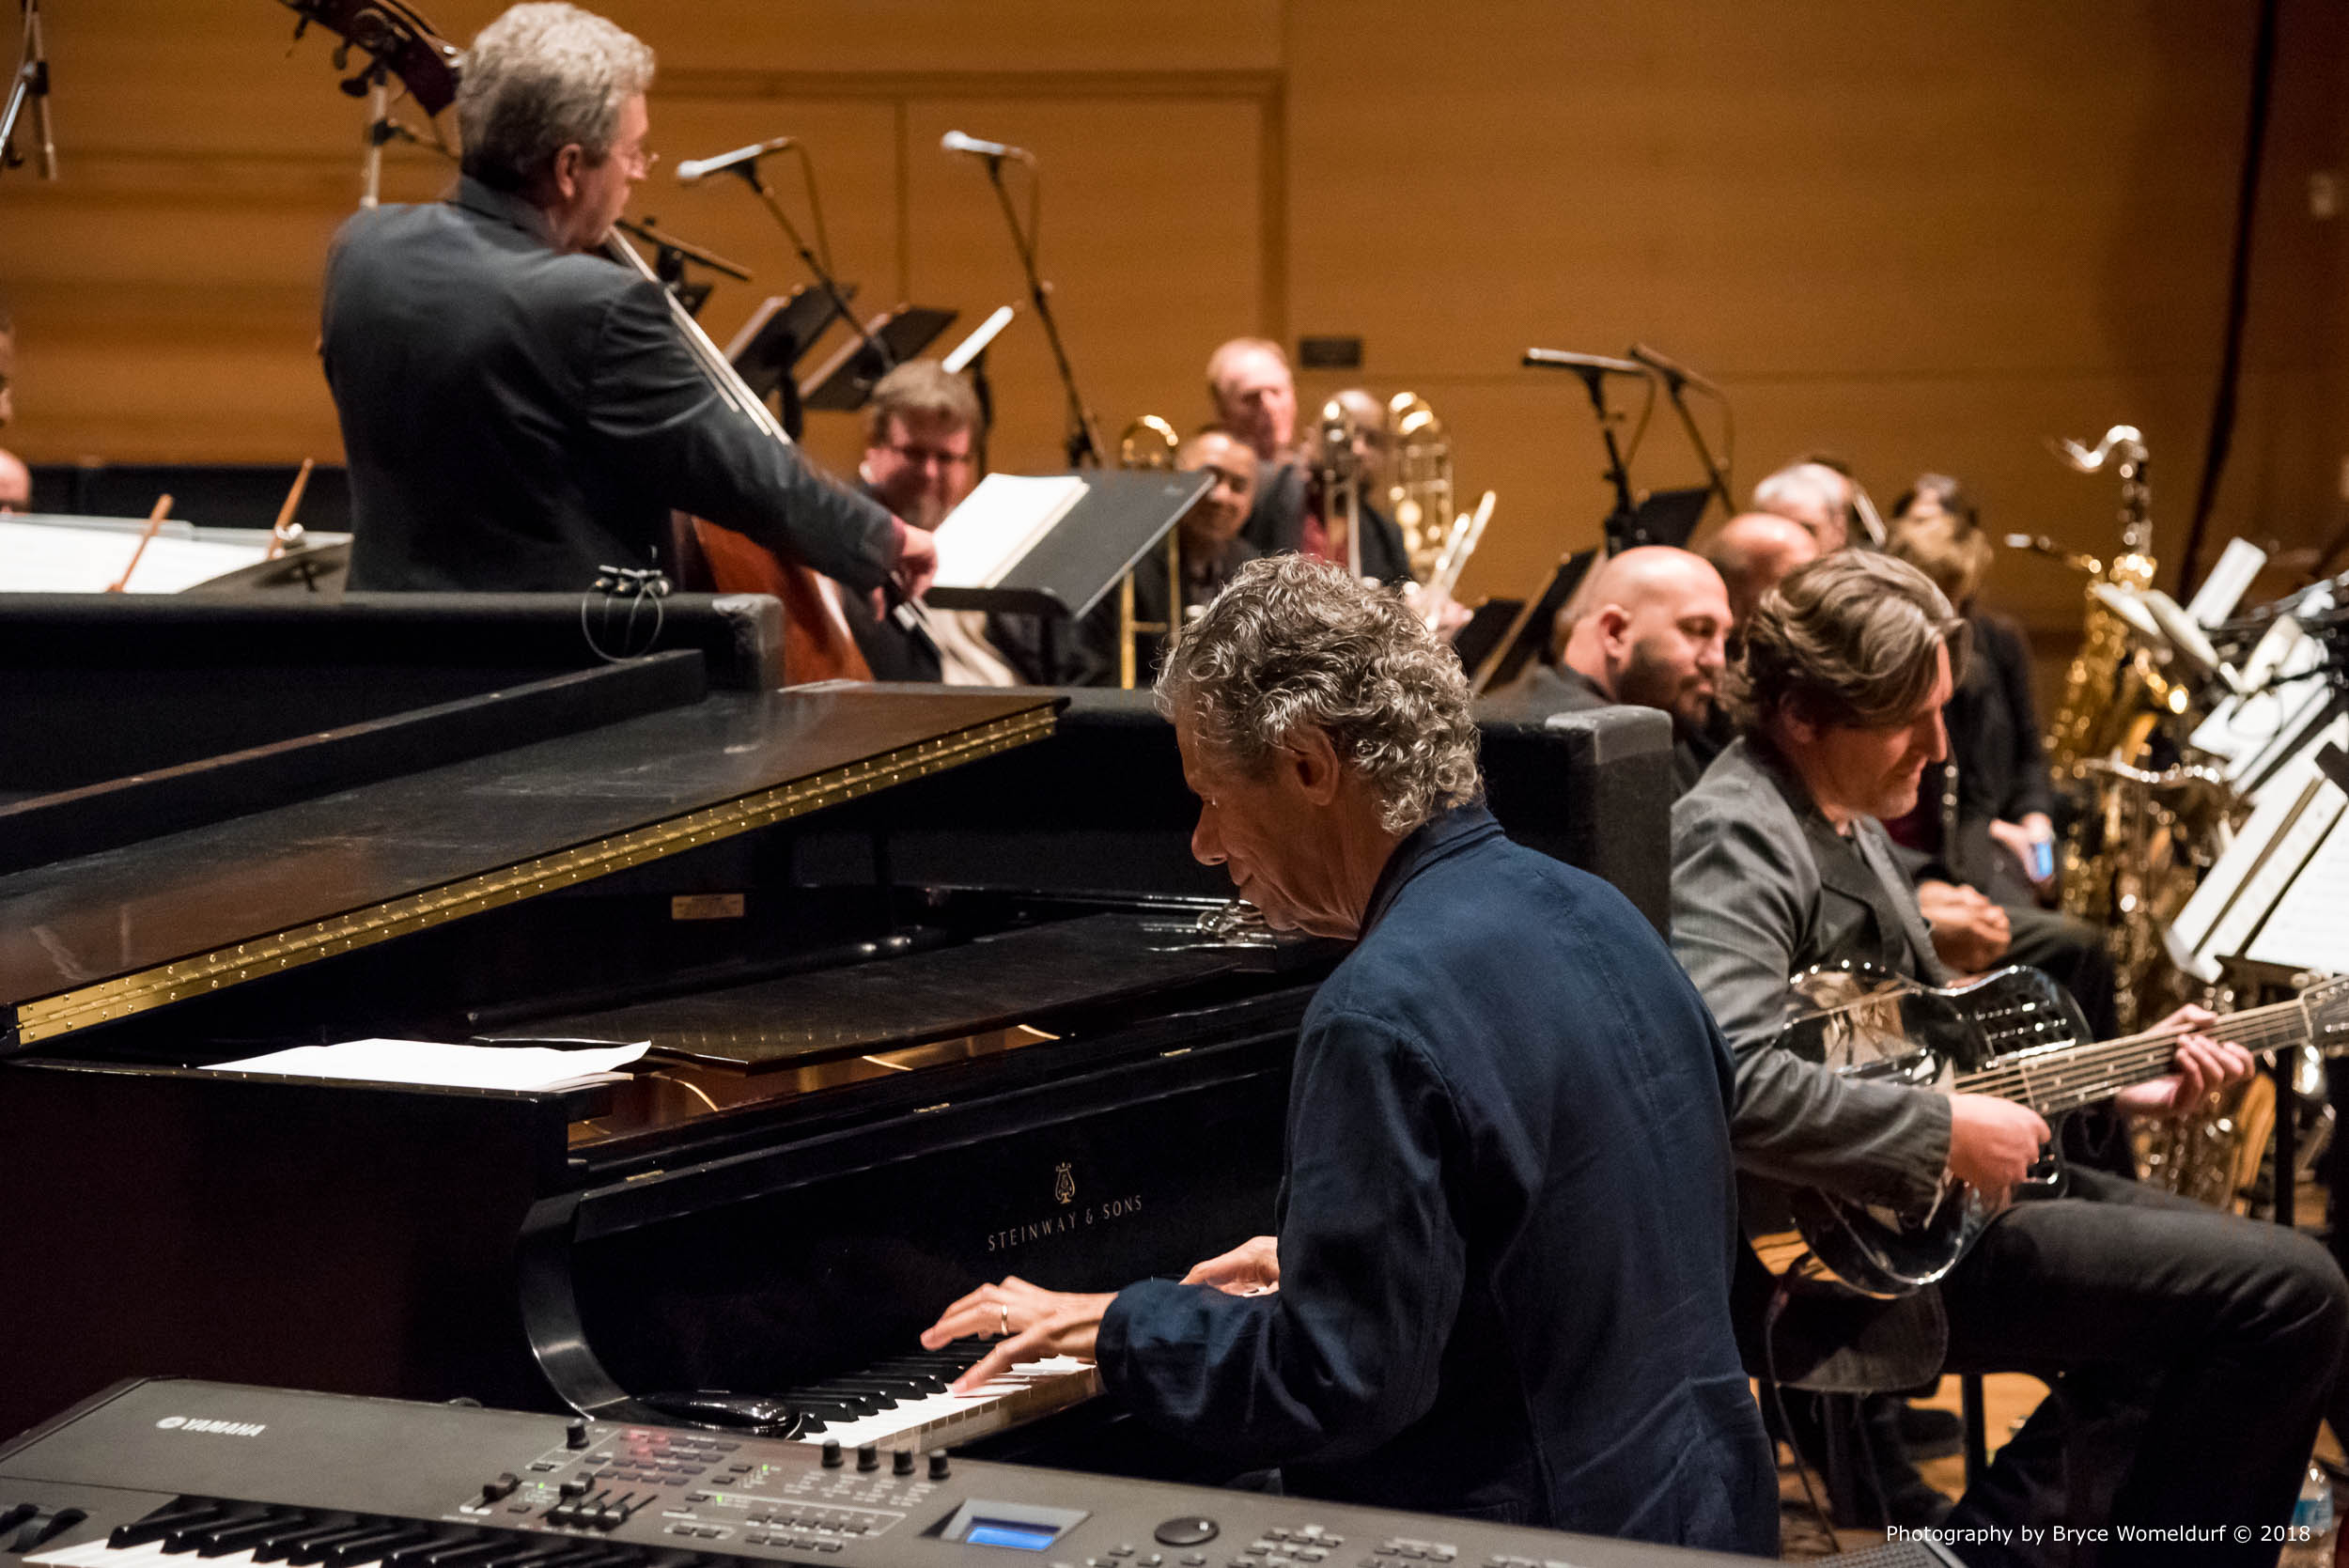 Jazz legend Chick Corea performs at the USF Concert Hall